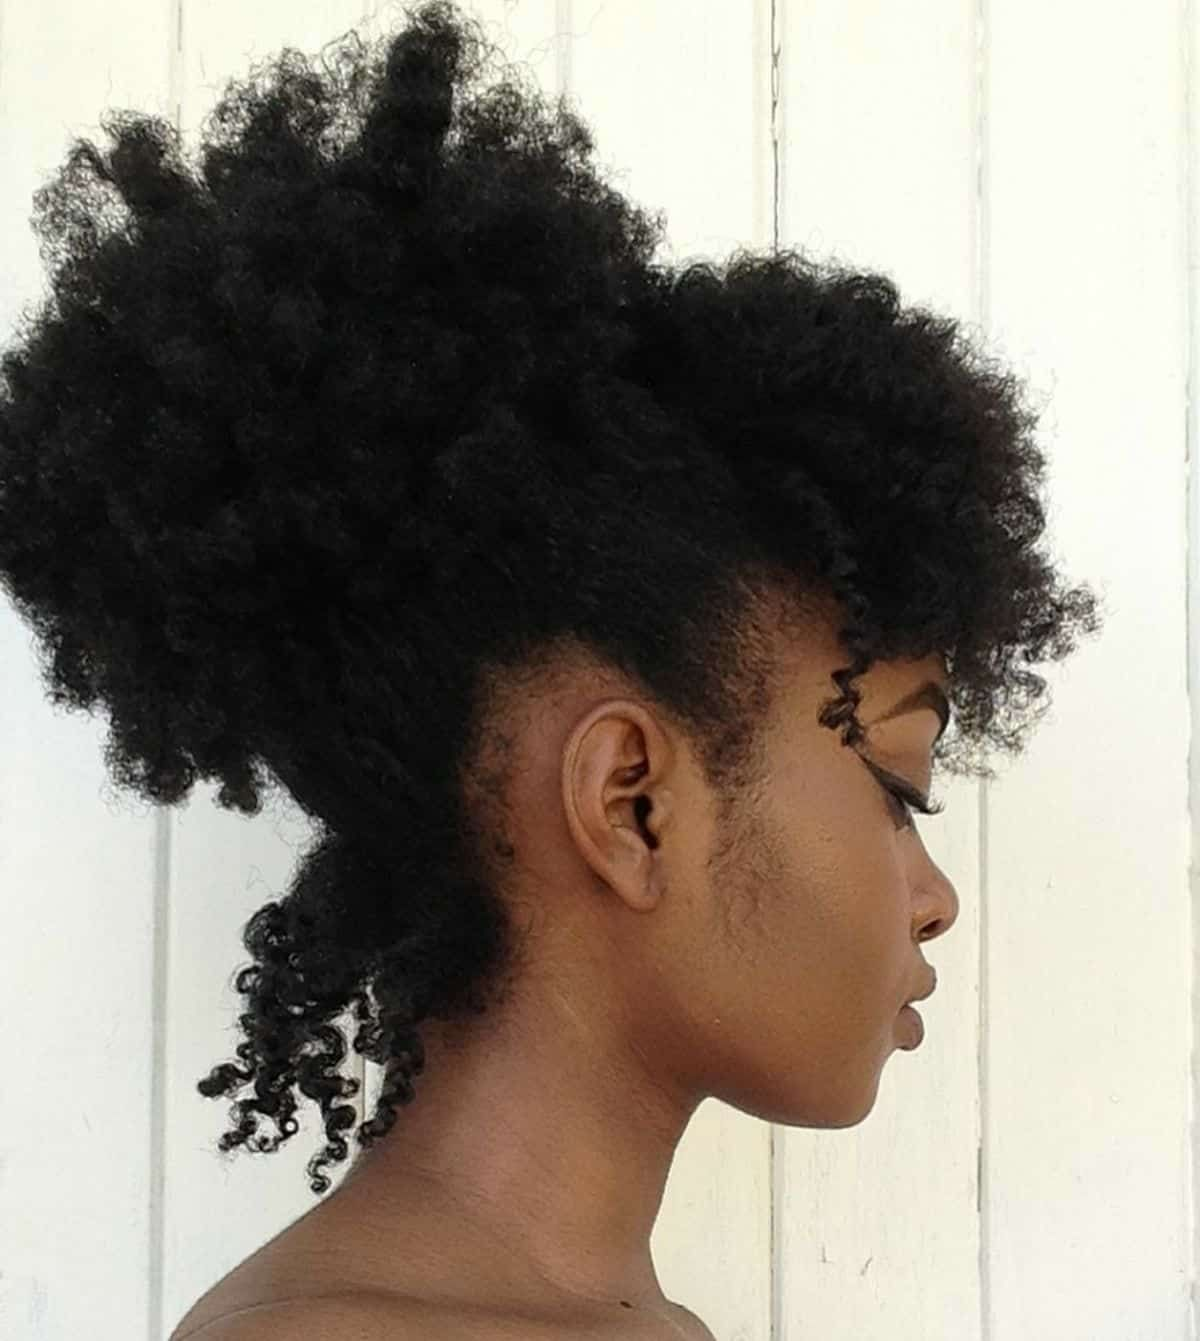 40 Different Ways To Style Your Natural Hair At Home Thrivenaija Short Natural Hair Styles Curly Hair Styles Curly Hair Styles Naturally